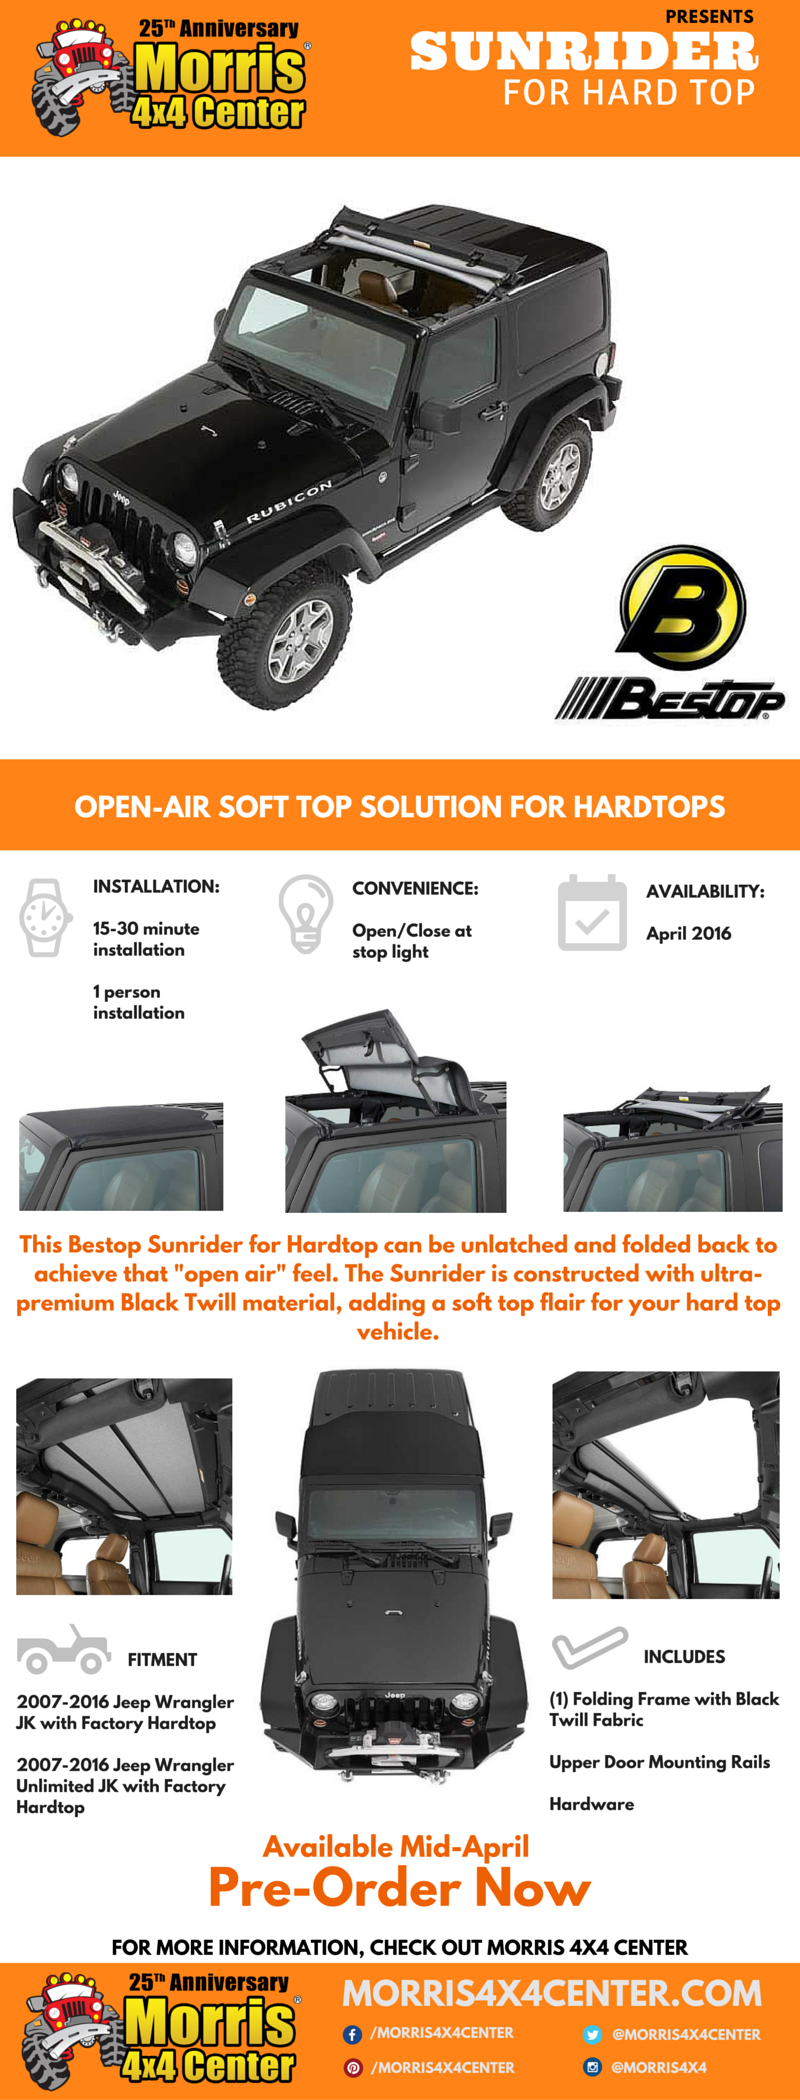 Bestop-Sunrider-for-Hardtop-Infographic